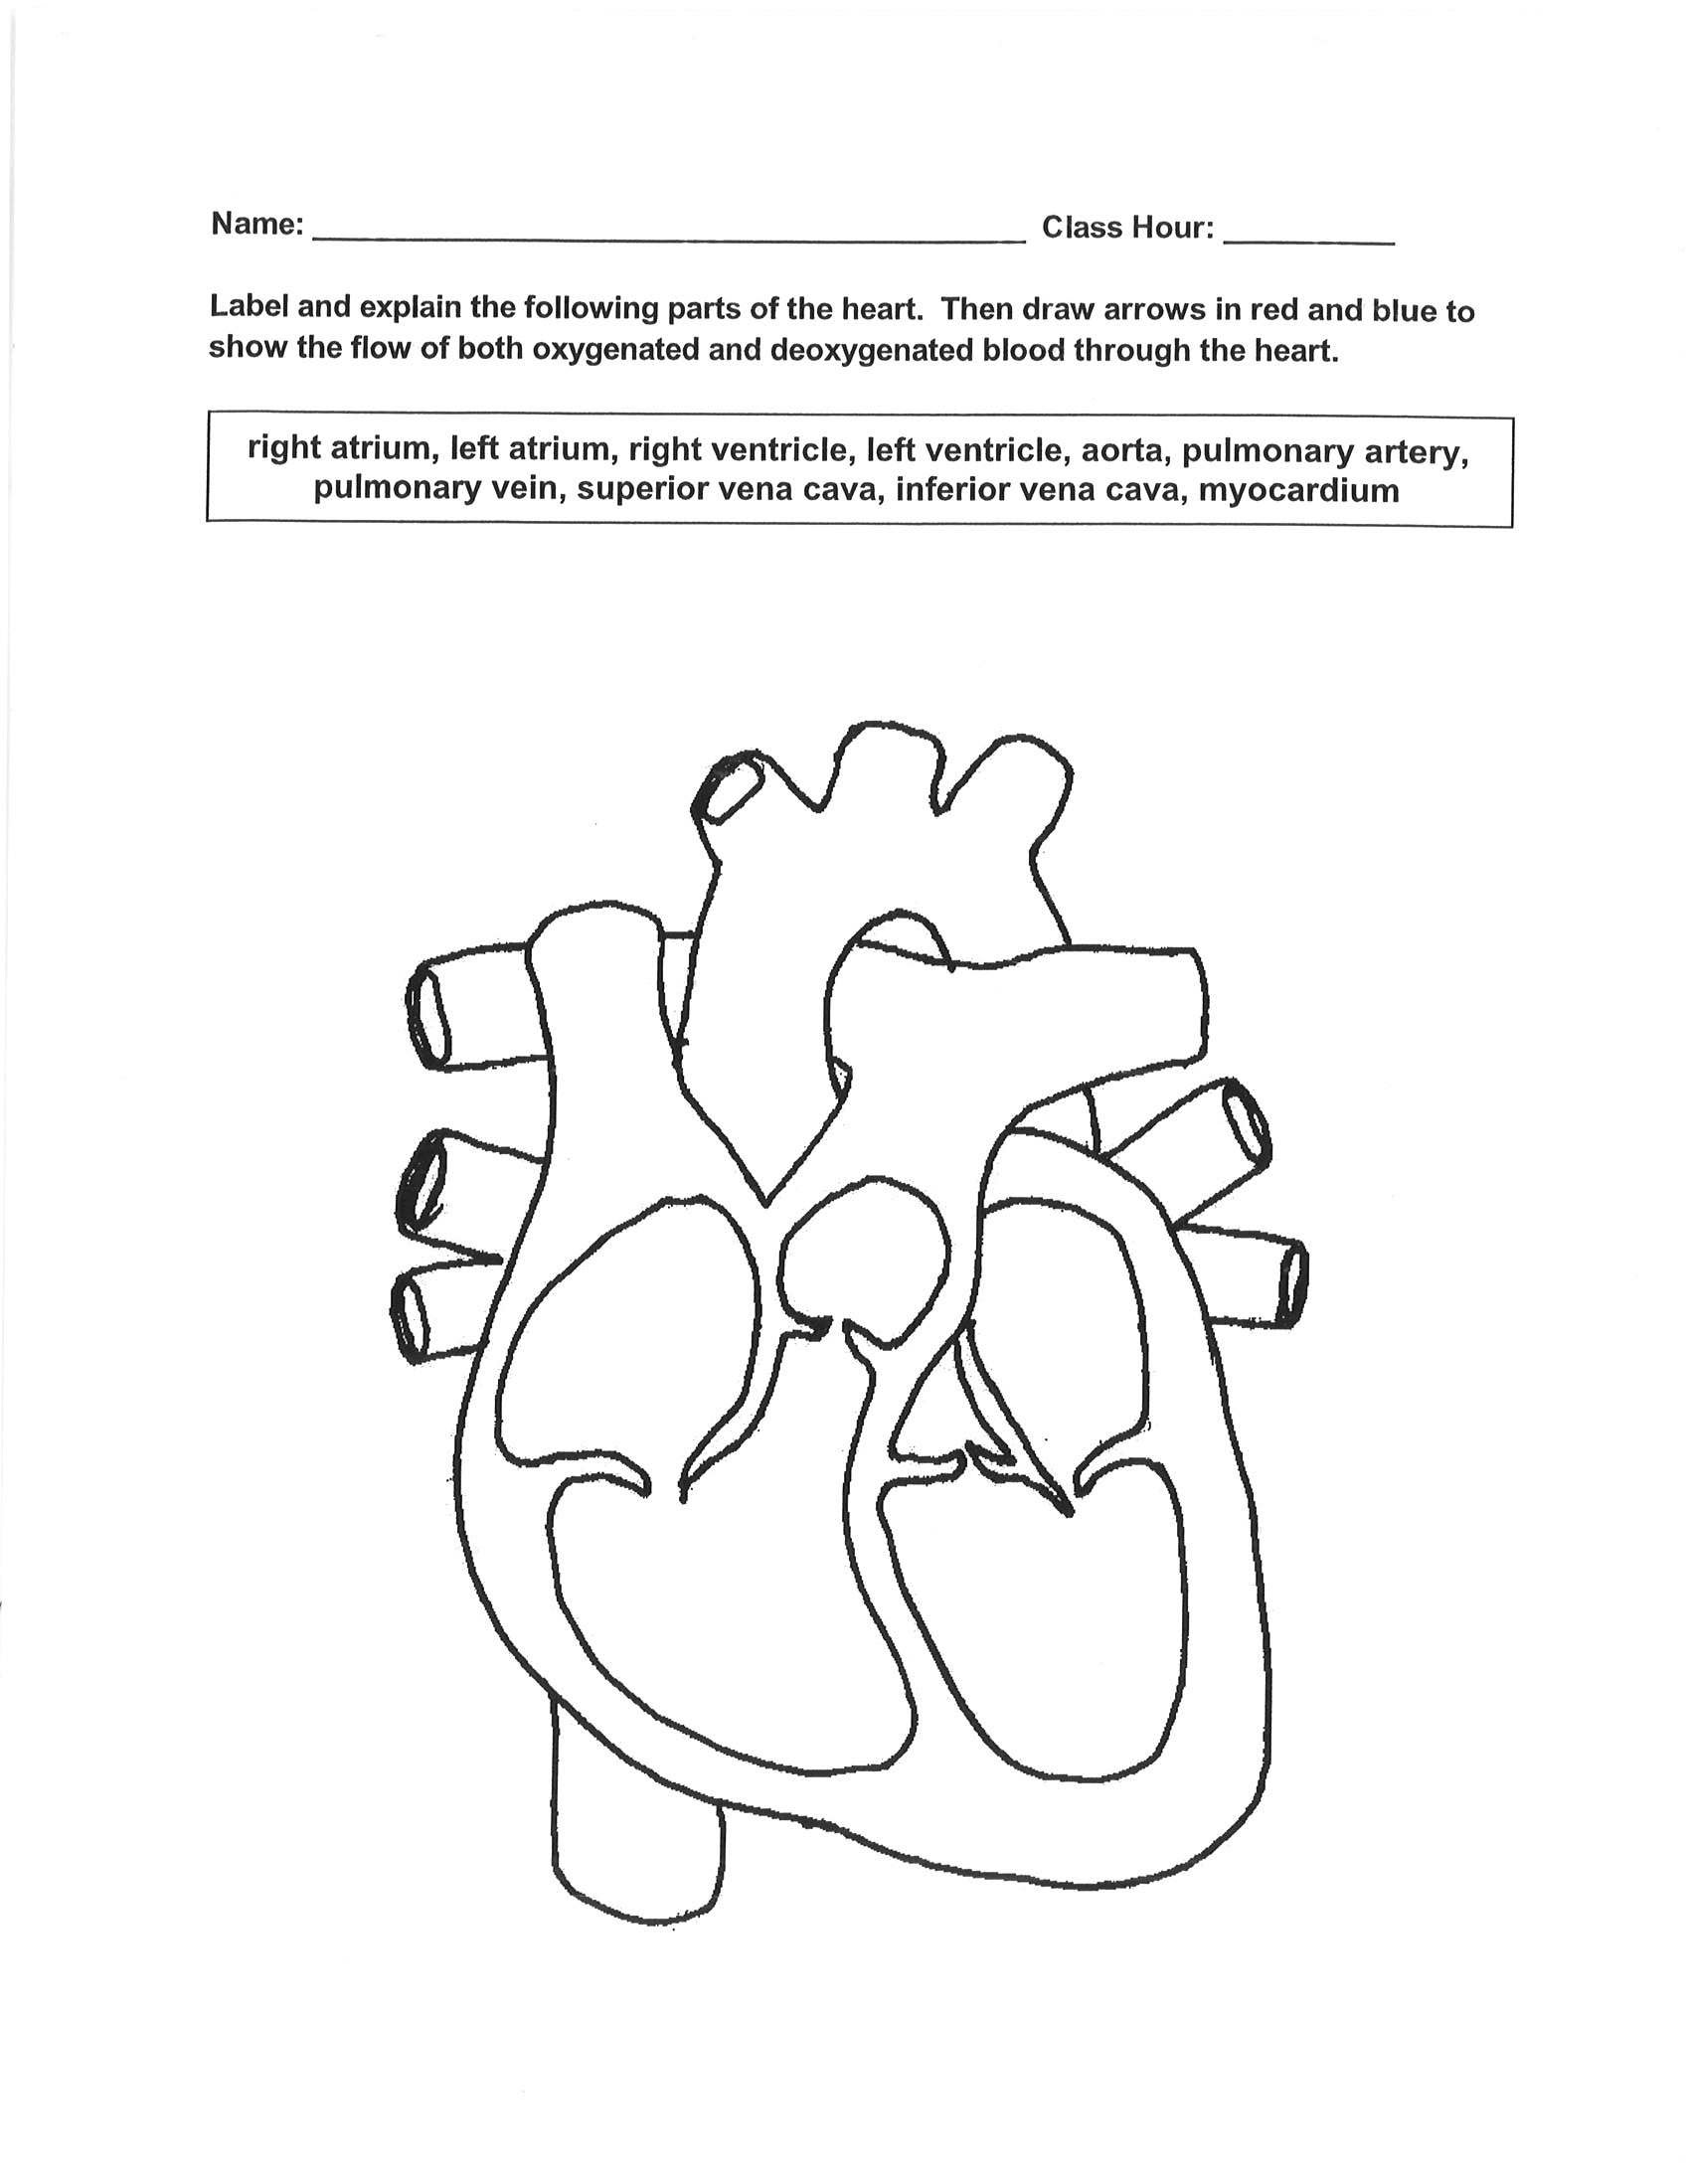 circulatory system worksheets 5th grade the best and most comprehensive worksheets. Black Bedroom Furniture Sets. Home Design Ideas